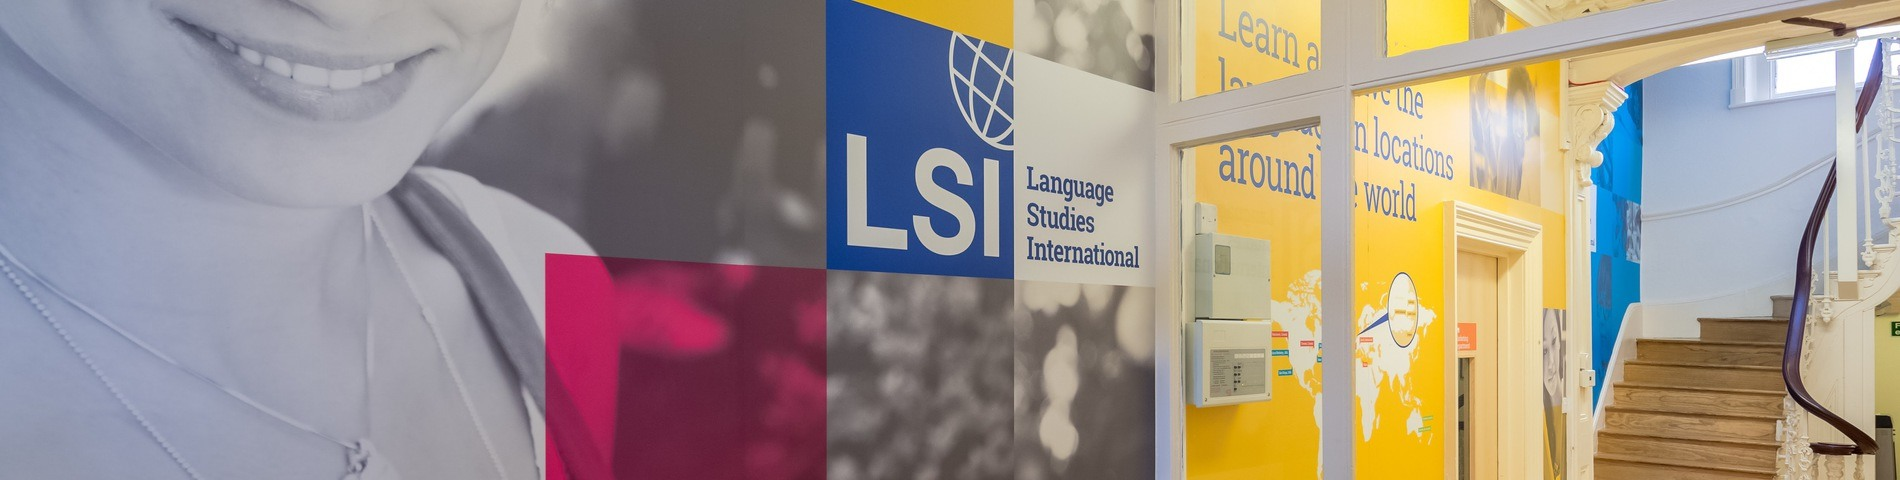 LSI - Language Studies International - Hampstead Bild 1